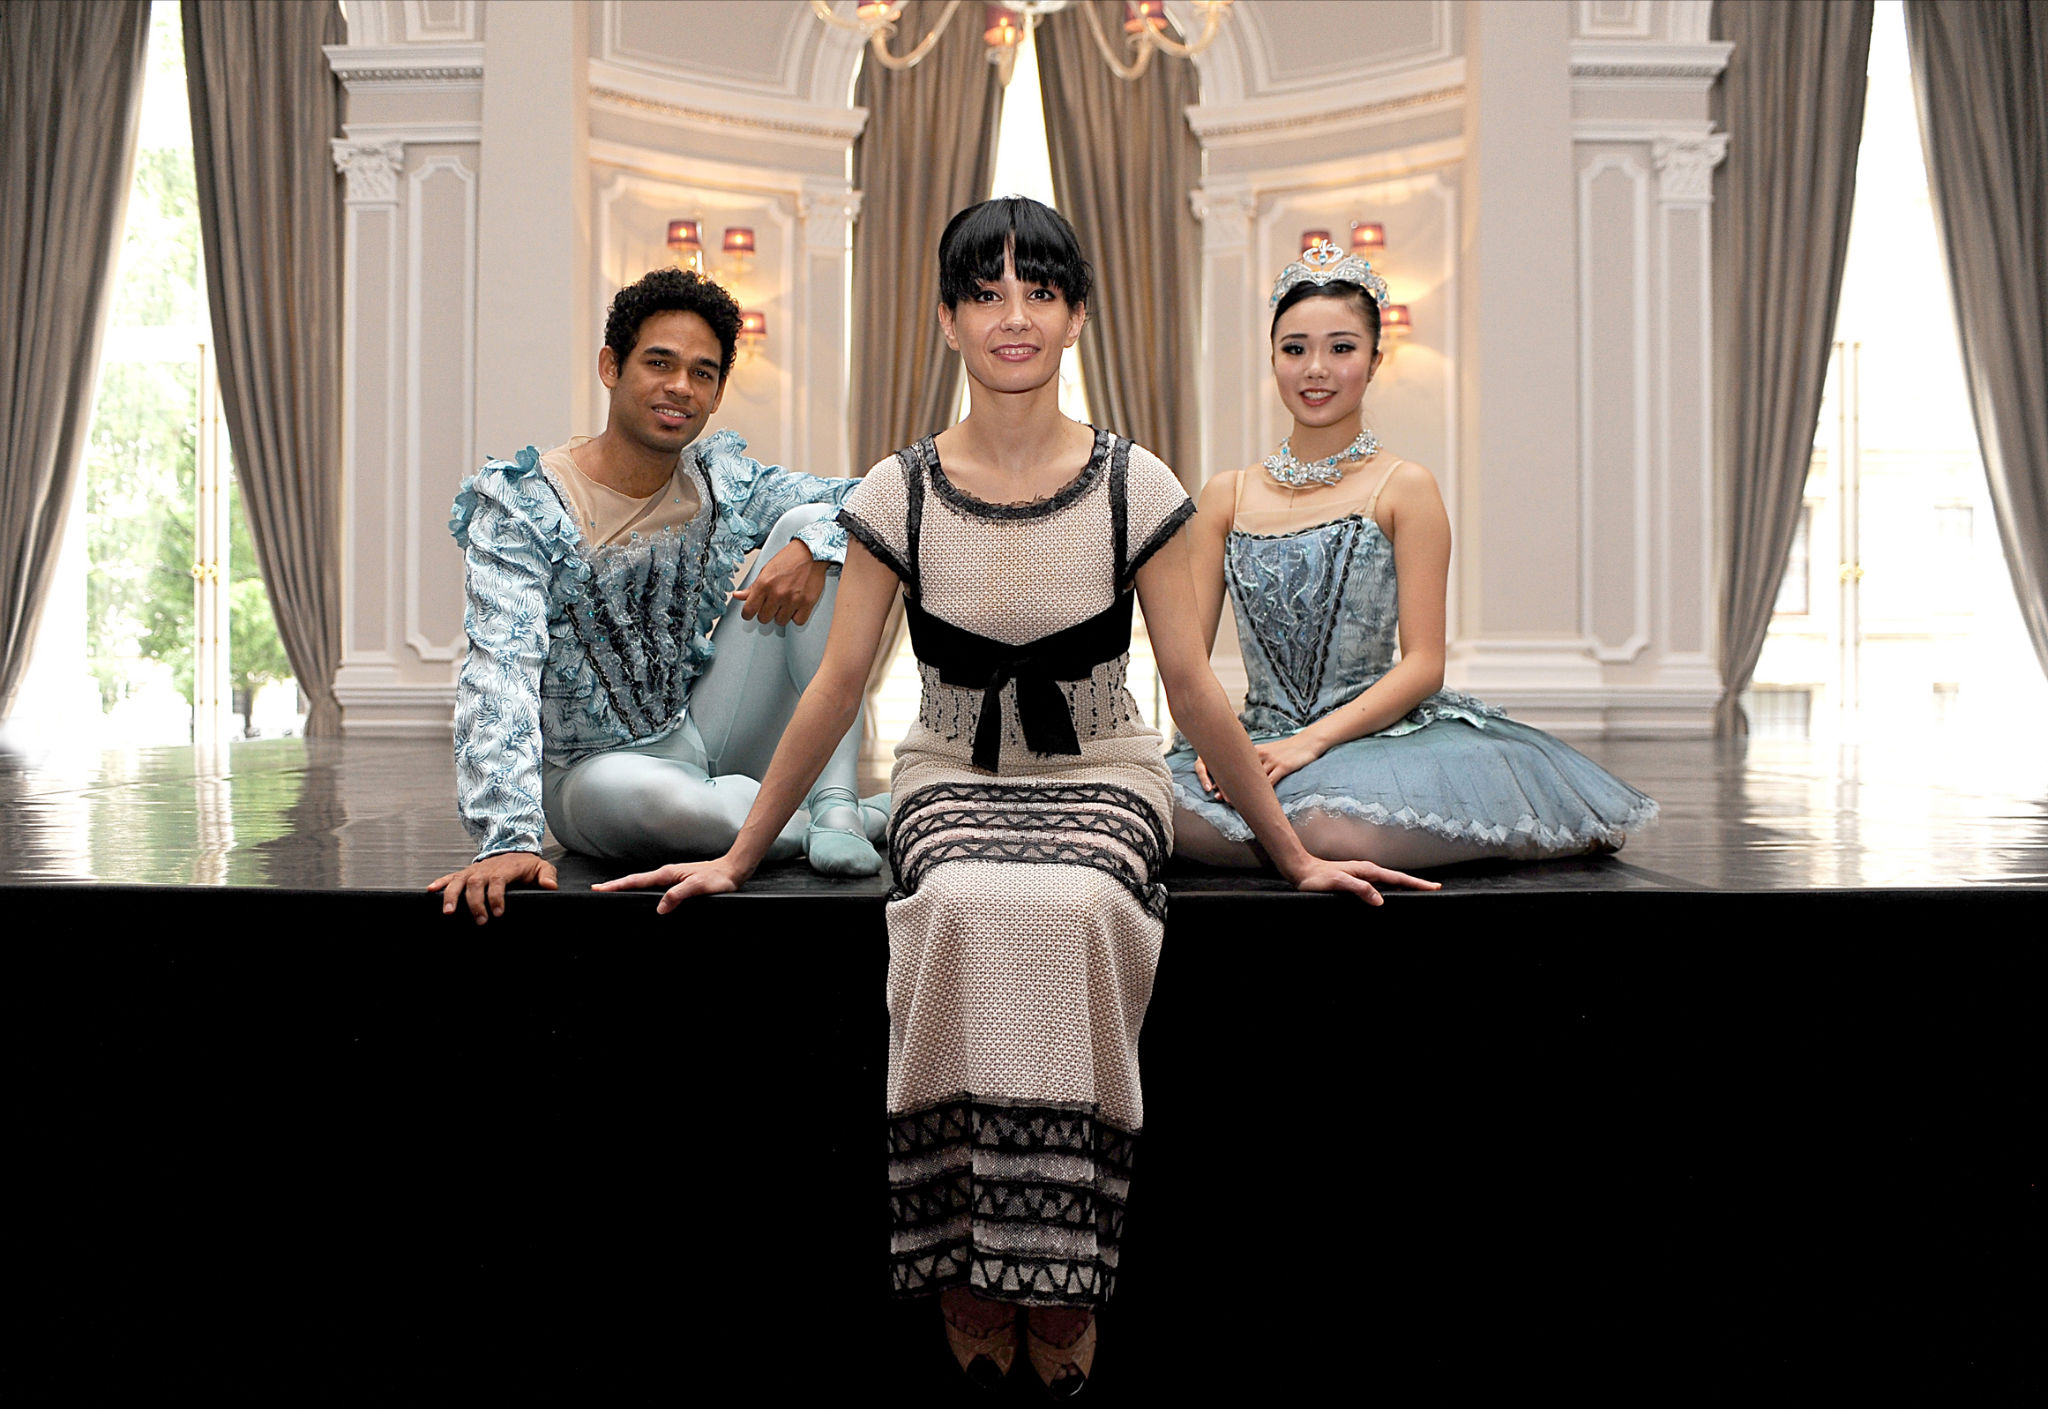 Tamara Rojo, Artistic Director of English National Ballet, with dancers Yonah Acosta and Shiori Kase (photo by Annabel Moeller).